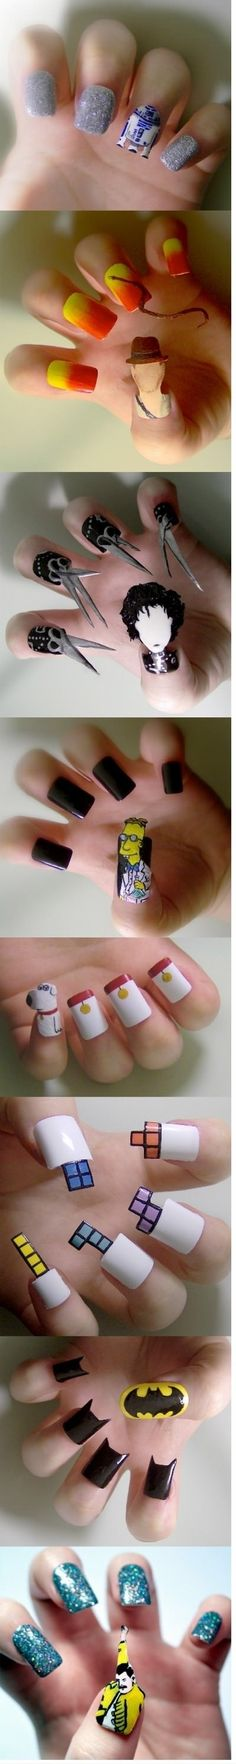 Click to see more pics... Such cool nail art!